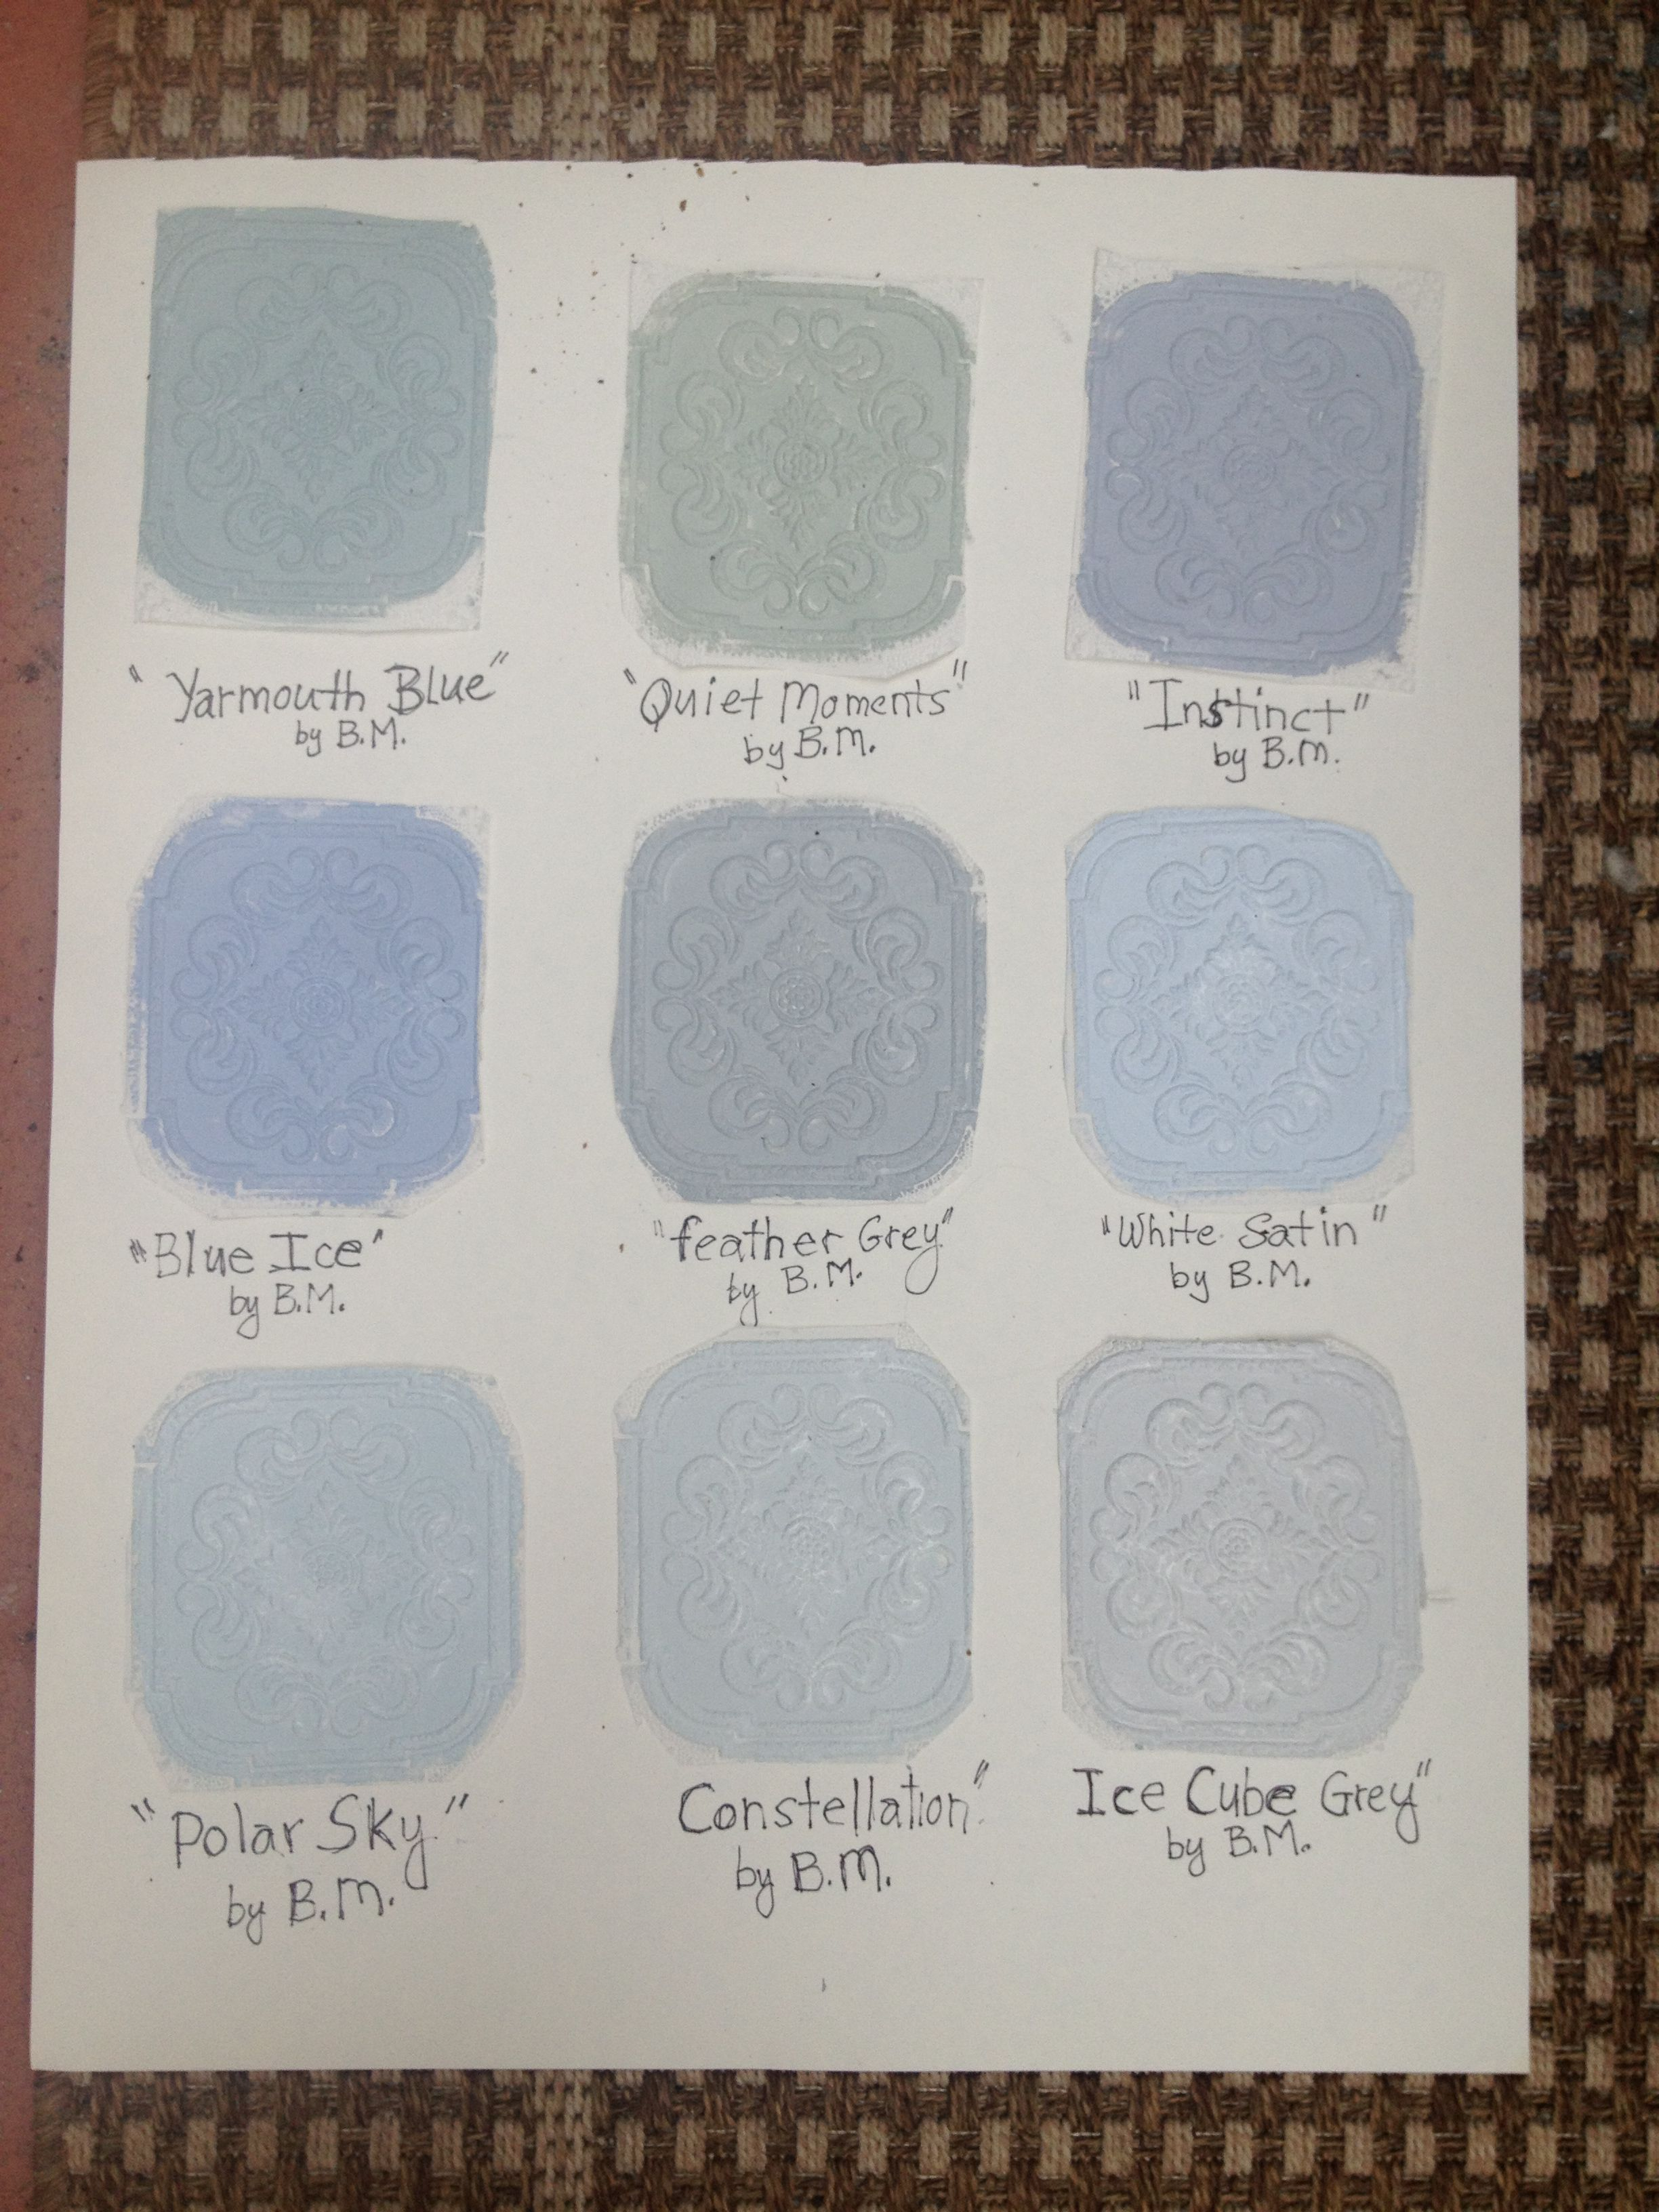 Benjamin moore paint home depot - Hand Painted Benjamin Moore Grey Interior Paint Samples These Grey Wall Colors Were Hand Painted With